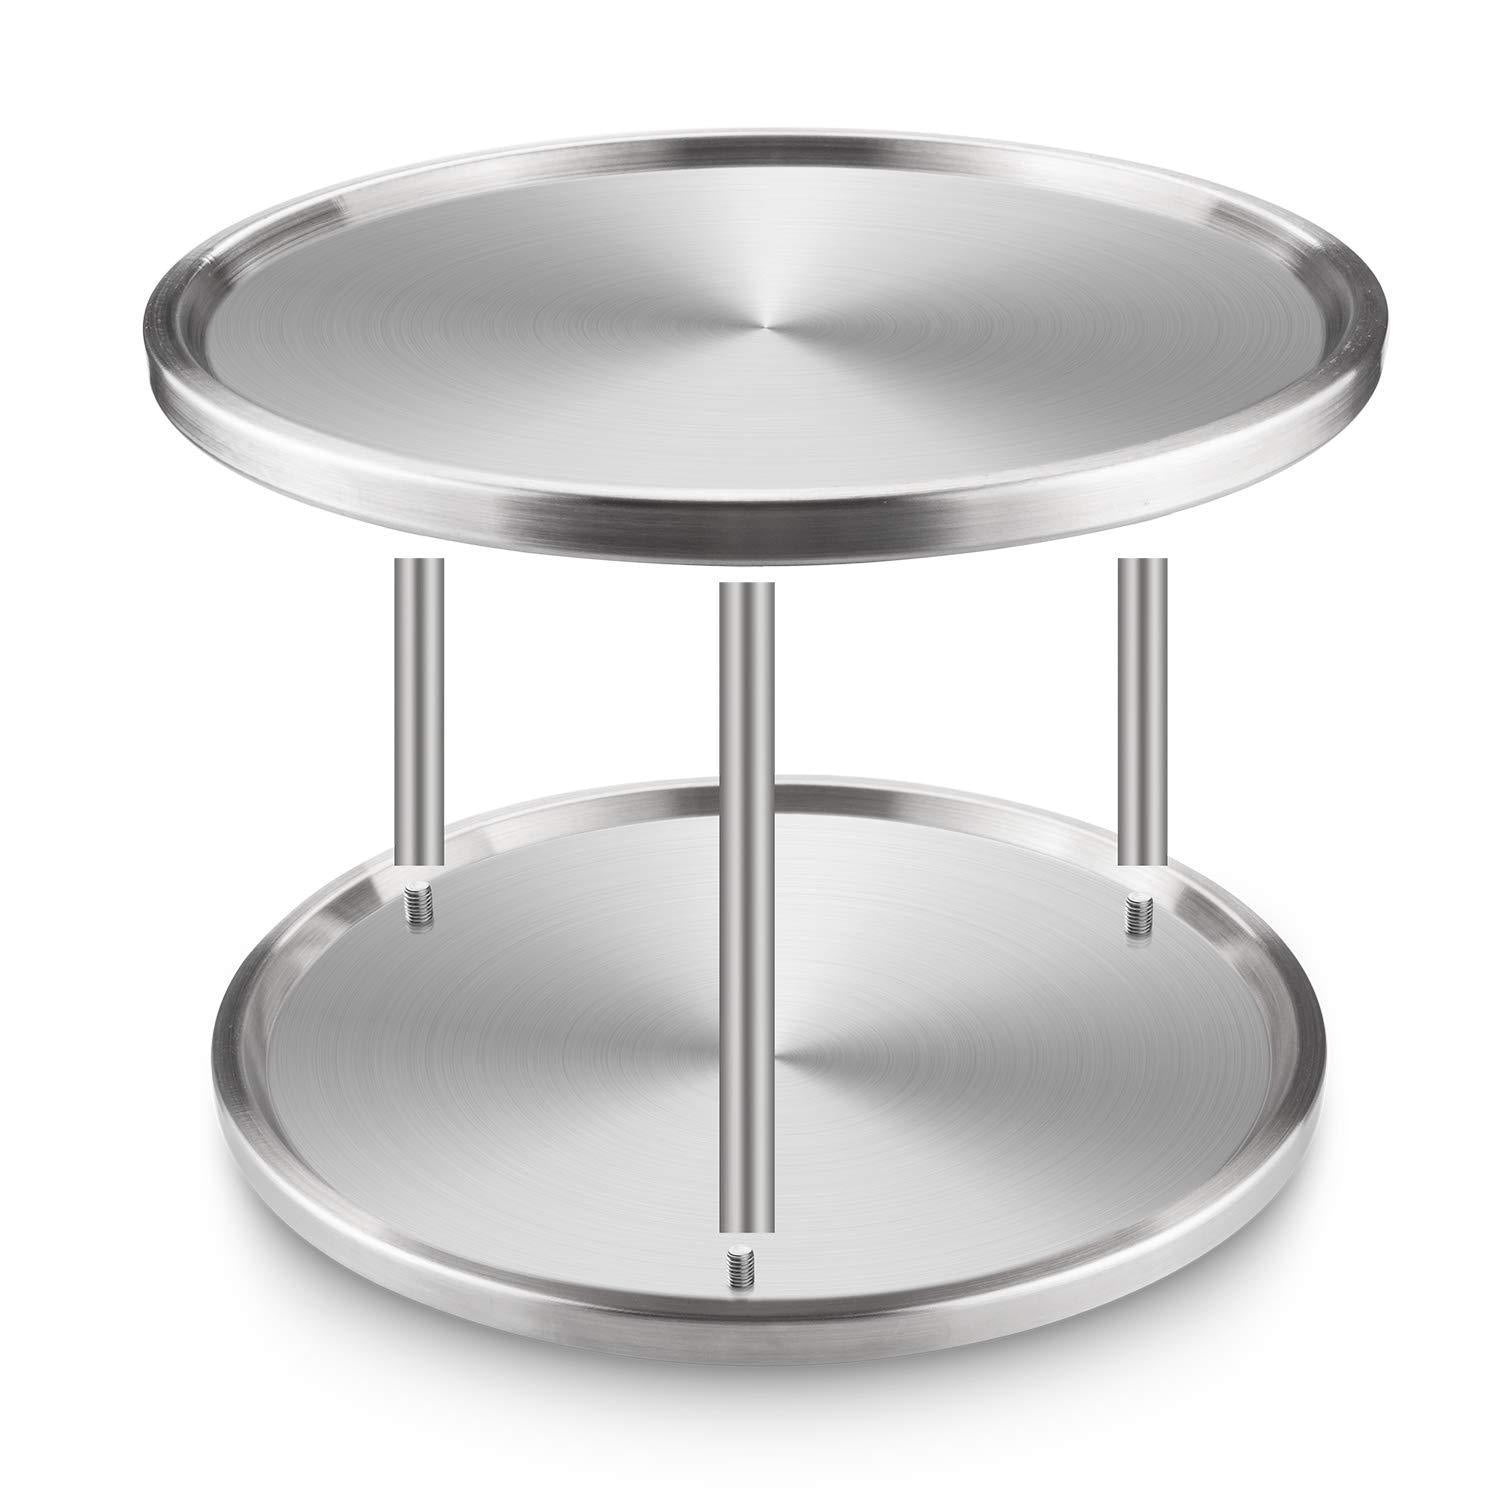 Exclusive starvast 2 pack 2 tier stainless steel lazy susan turntable 10 inch 360 degree lazy susan spice rack organizer for kitchen cabinet countertop centerpiece